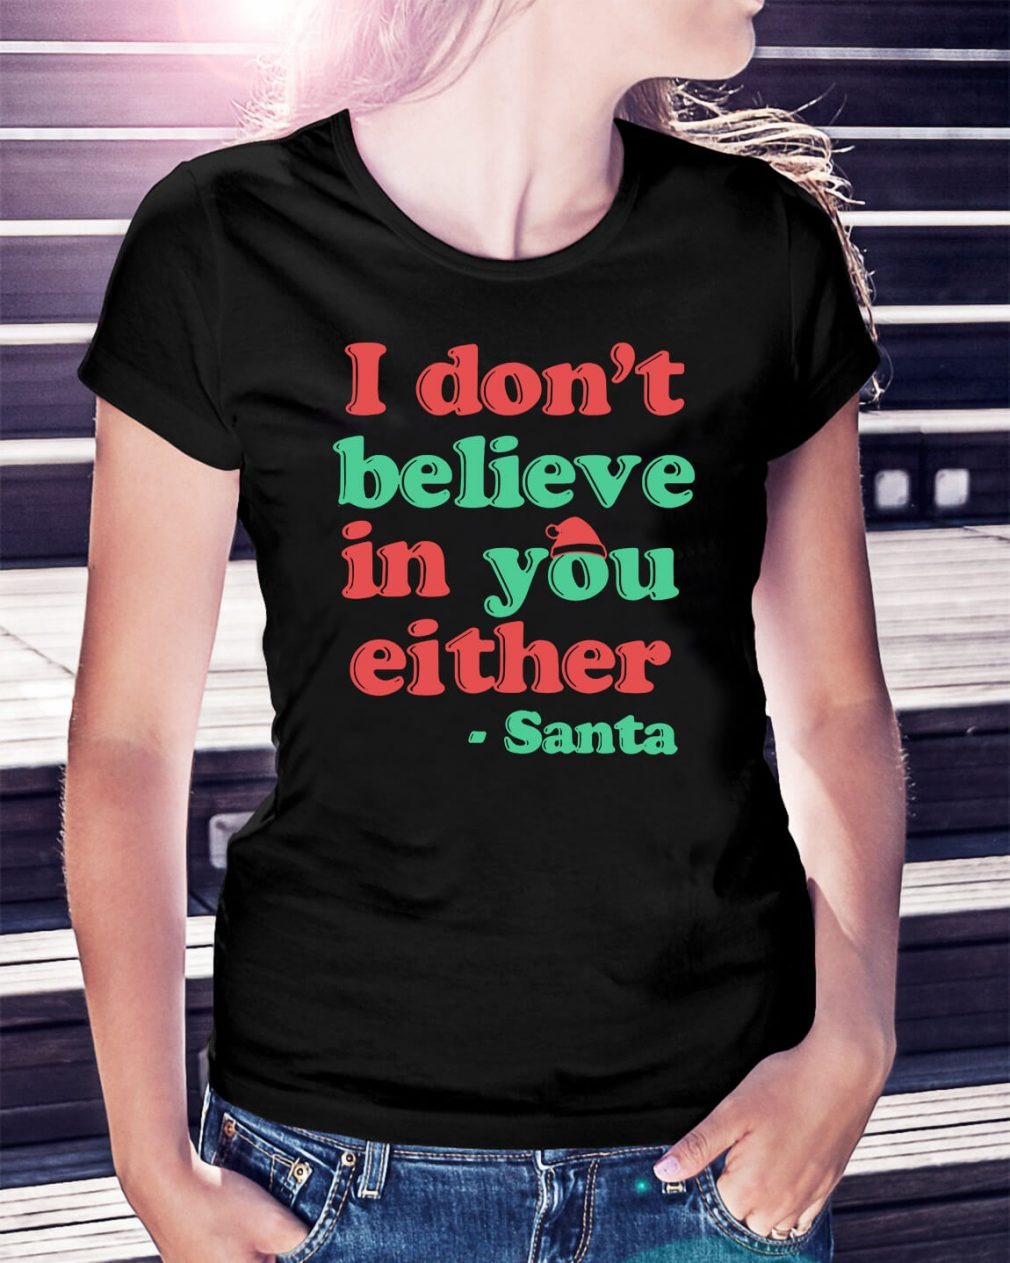 I don't believe in you either Santa Ladies Tee